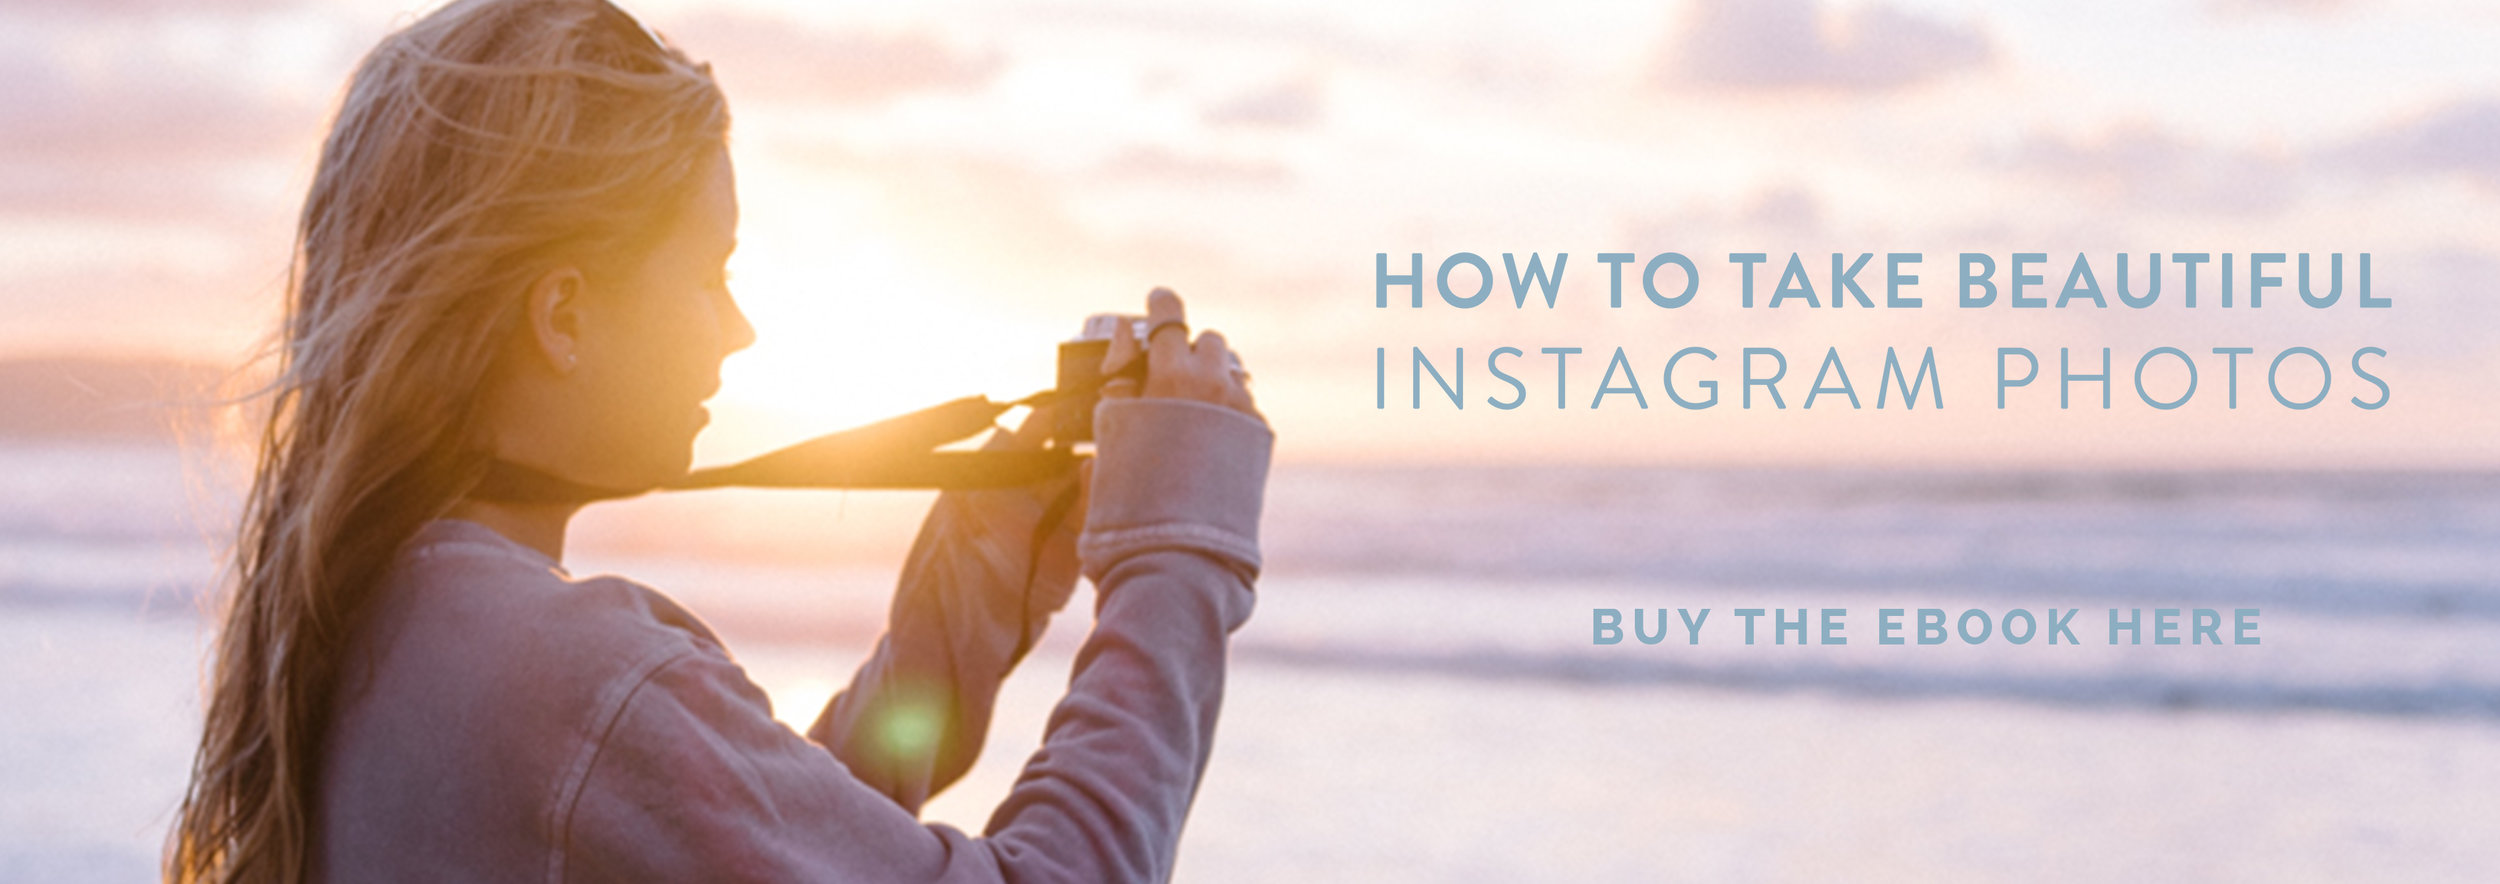 How To Take Beautiful Instagram Photos // Ebook by Olivia Bossert // www.oliviabossert.com // social media tips, Instagram tips, Instagram photography tips, Instagram followers, grow your Instagram, Instagram theme, Instagram grid, social media photography, photography tips, smartphone photography tips, marketing tips, small business tips, cheap ebook on Instagram, ebook about Instagram, ebook about Instagram photography, ebook about photography, ebook about smartphone photography, ebook about branding photography, olivia bossert photography, instagram advice, photography advice, marketing advice